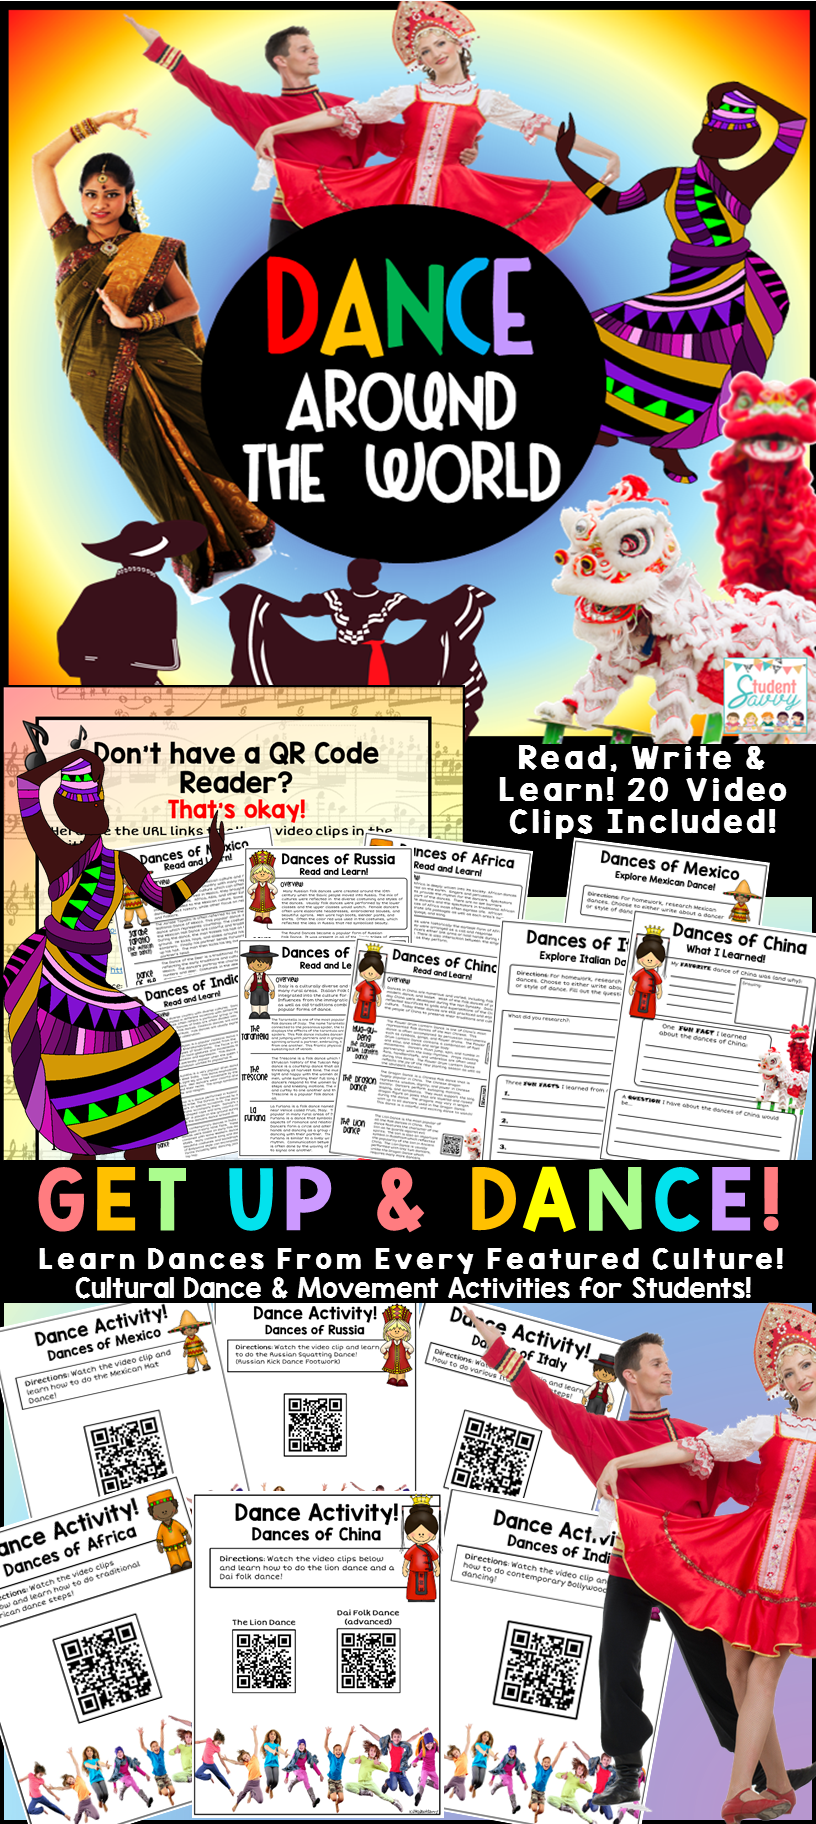 Multicultural dance activities for the classroom my elementary students will love this perfect end of the year activity too